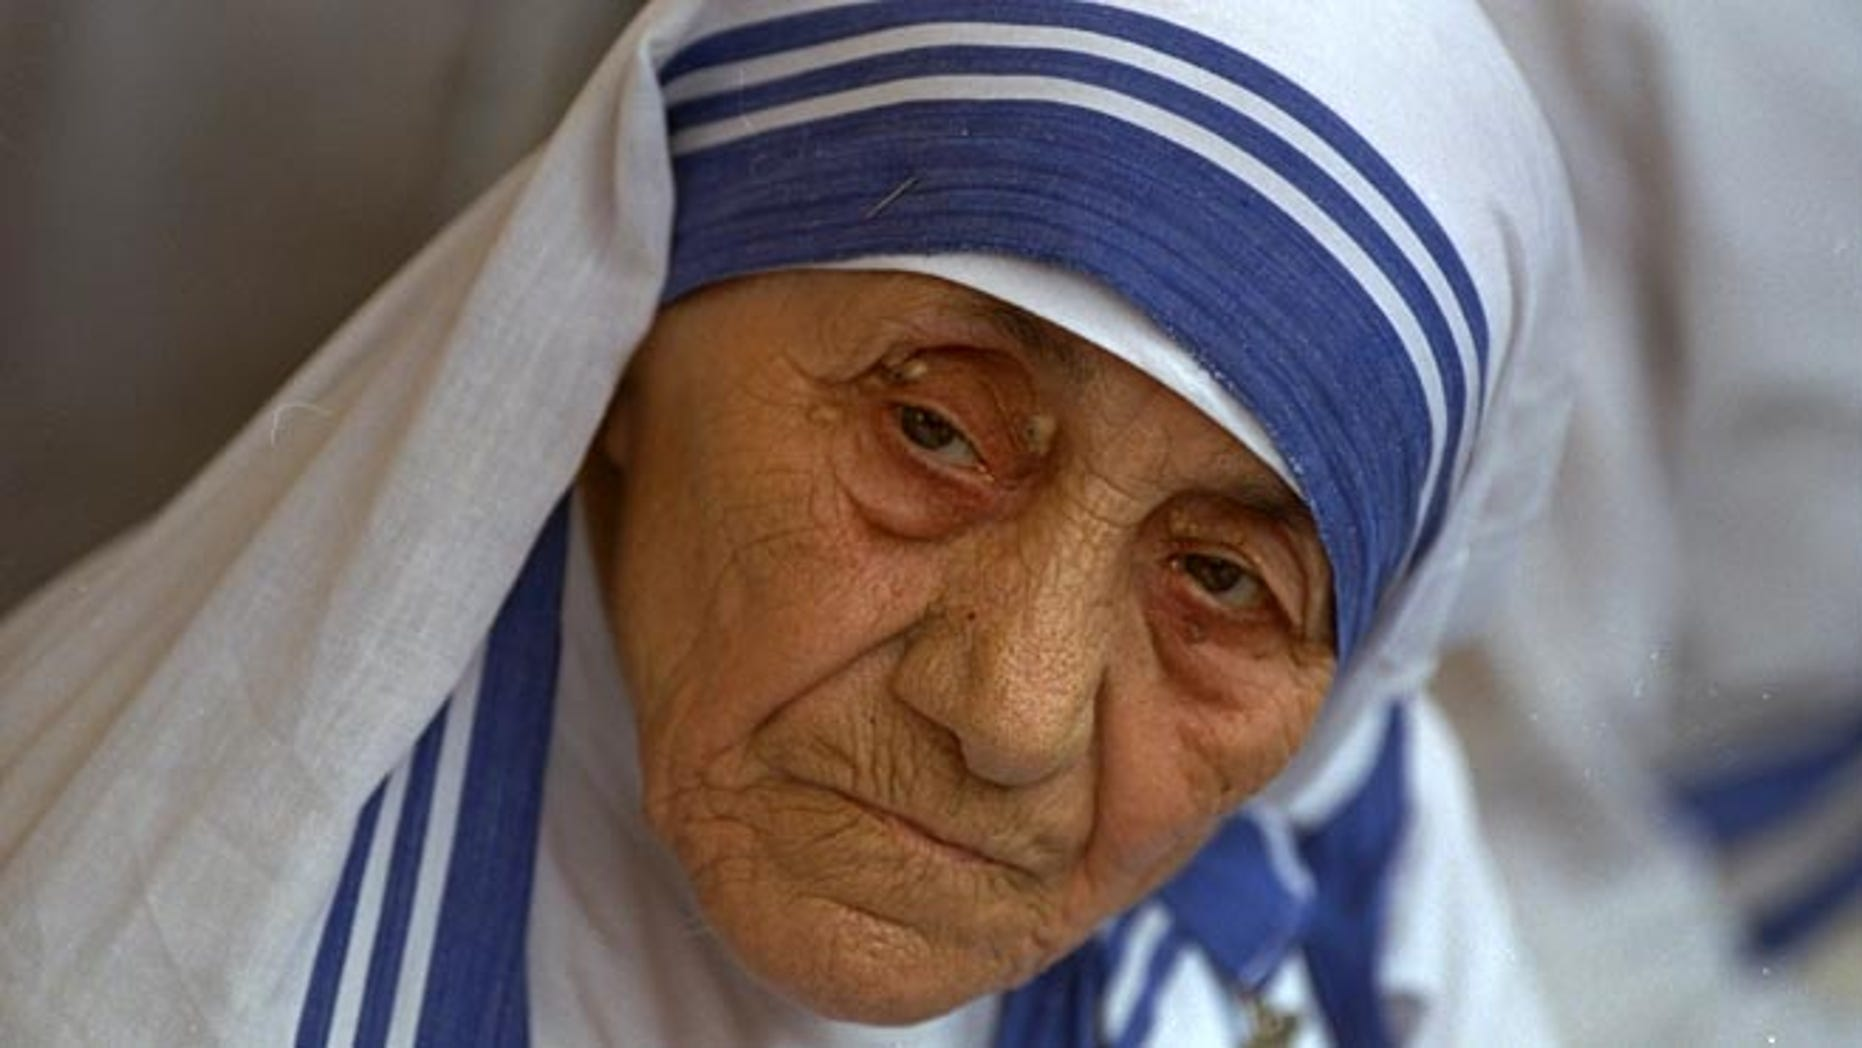 FILE - In this Aug. 25, 1993 file photo Mother Teresa, head of Missionaries of Charity, is photographed, in New Delhi,  India. Pope Francis has signed off on the miracle needed to make Mother Teresa a saint, giving the nun who cared for the poorest of the poor one of the Catholic Church's highest honors just two decades after her death. The Vatican said Friday, Dec. 18, 2015, that Francis approved a decree attributing a miracle to Mother Teresa's intercession during an audience with the head of the Vatican's saint-making office on Thursday, his 79th birthday. (AP Photo, file)